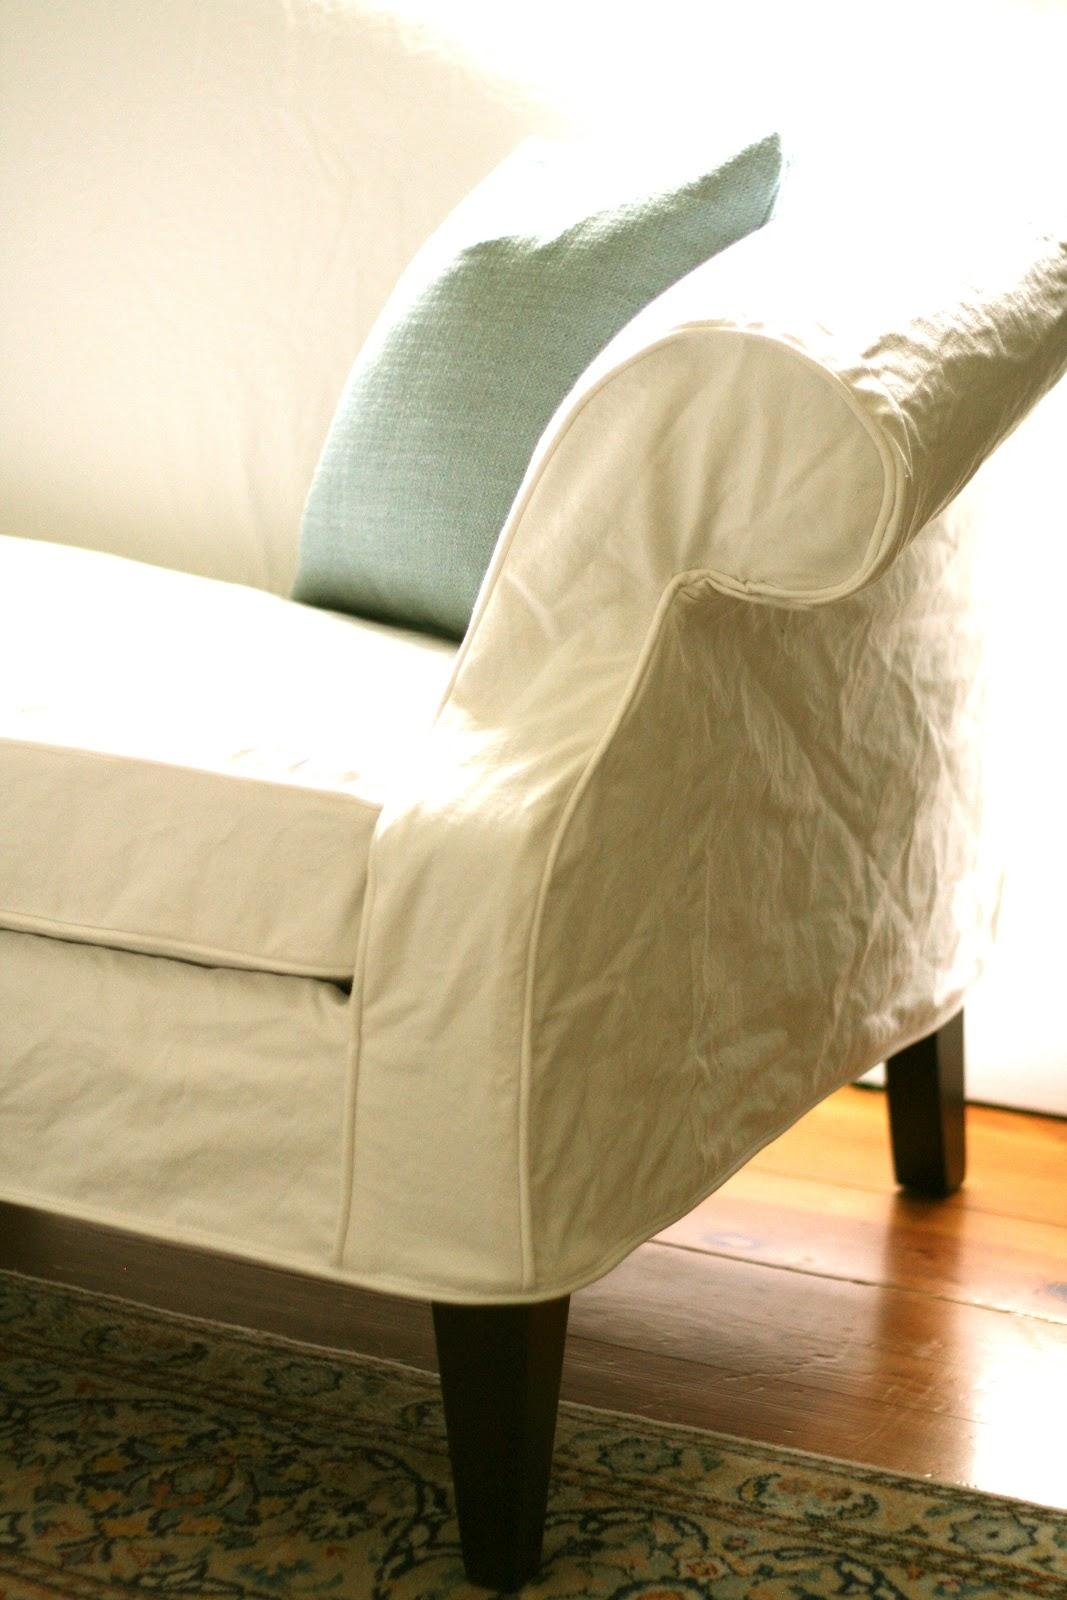 Custom Slipcoversshelley: White Camel Back Couch Throughout Camel Back Couch Slipcovers (Image 9 of 20)